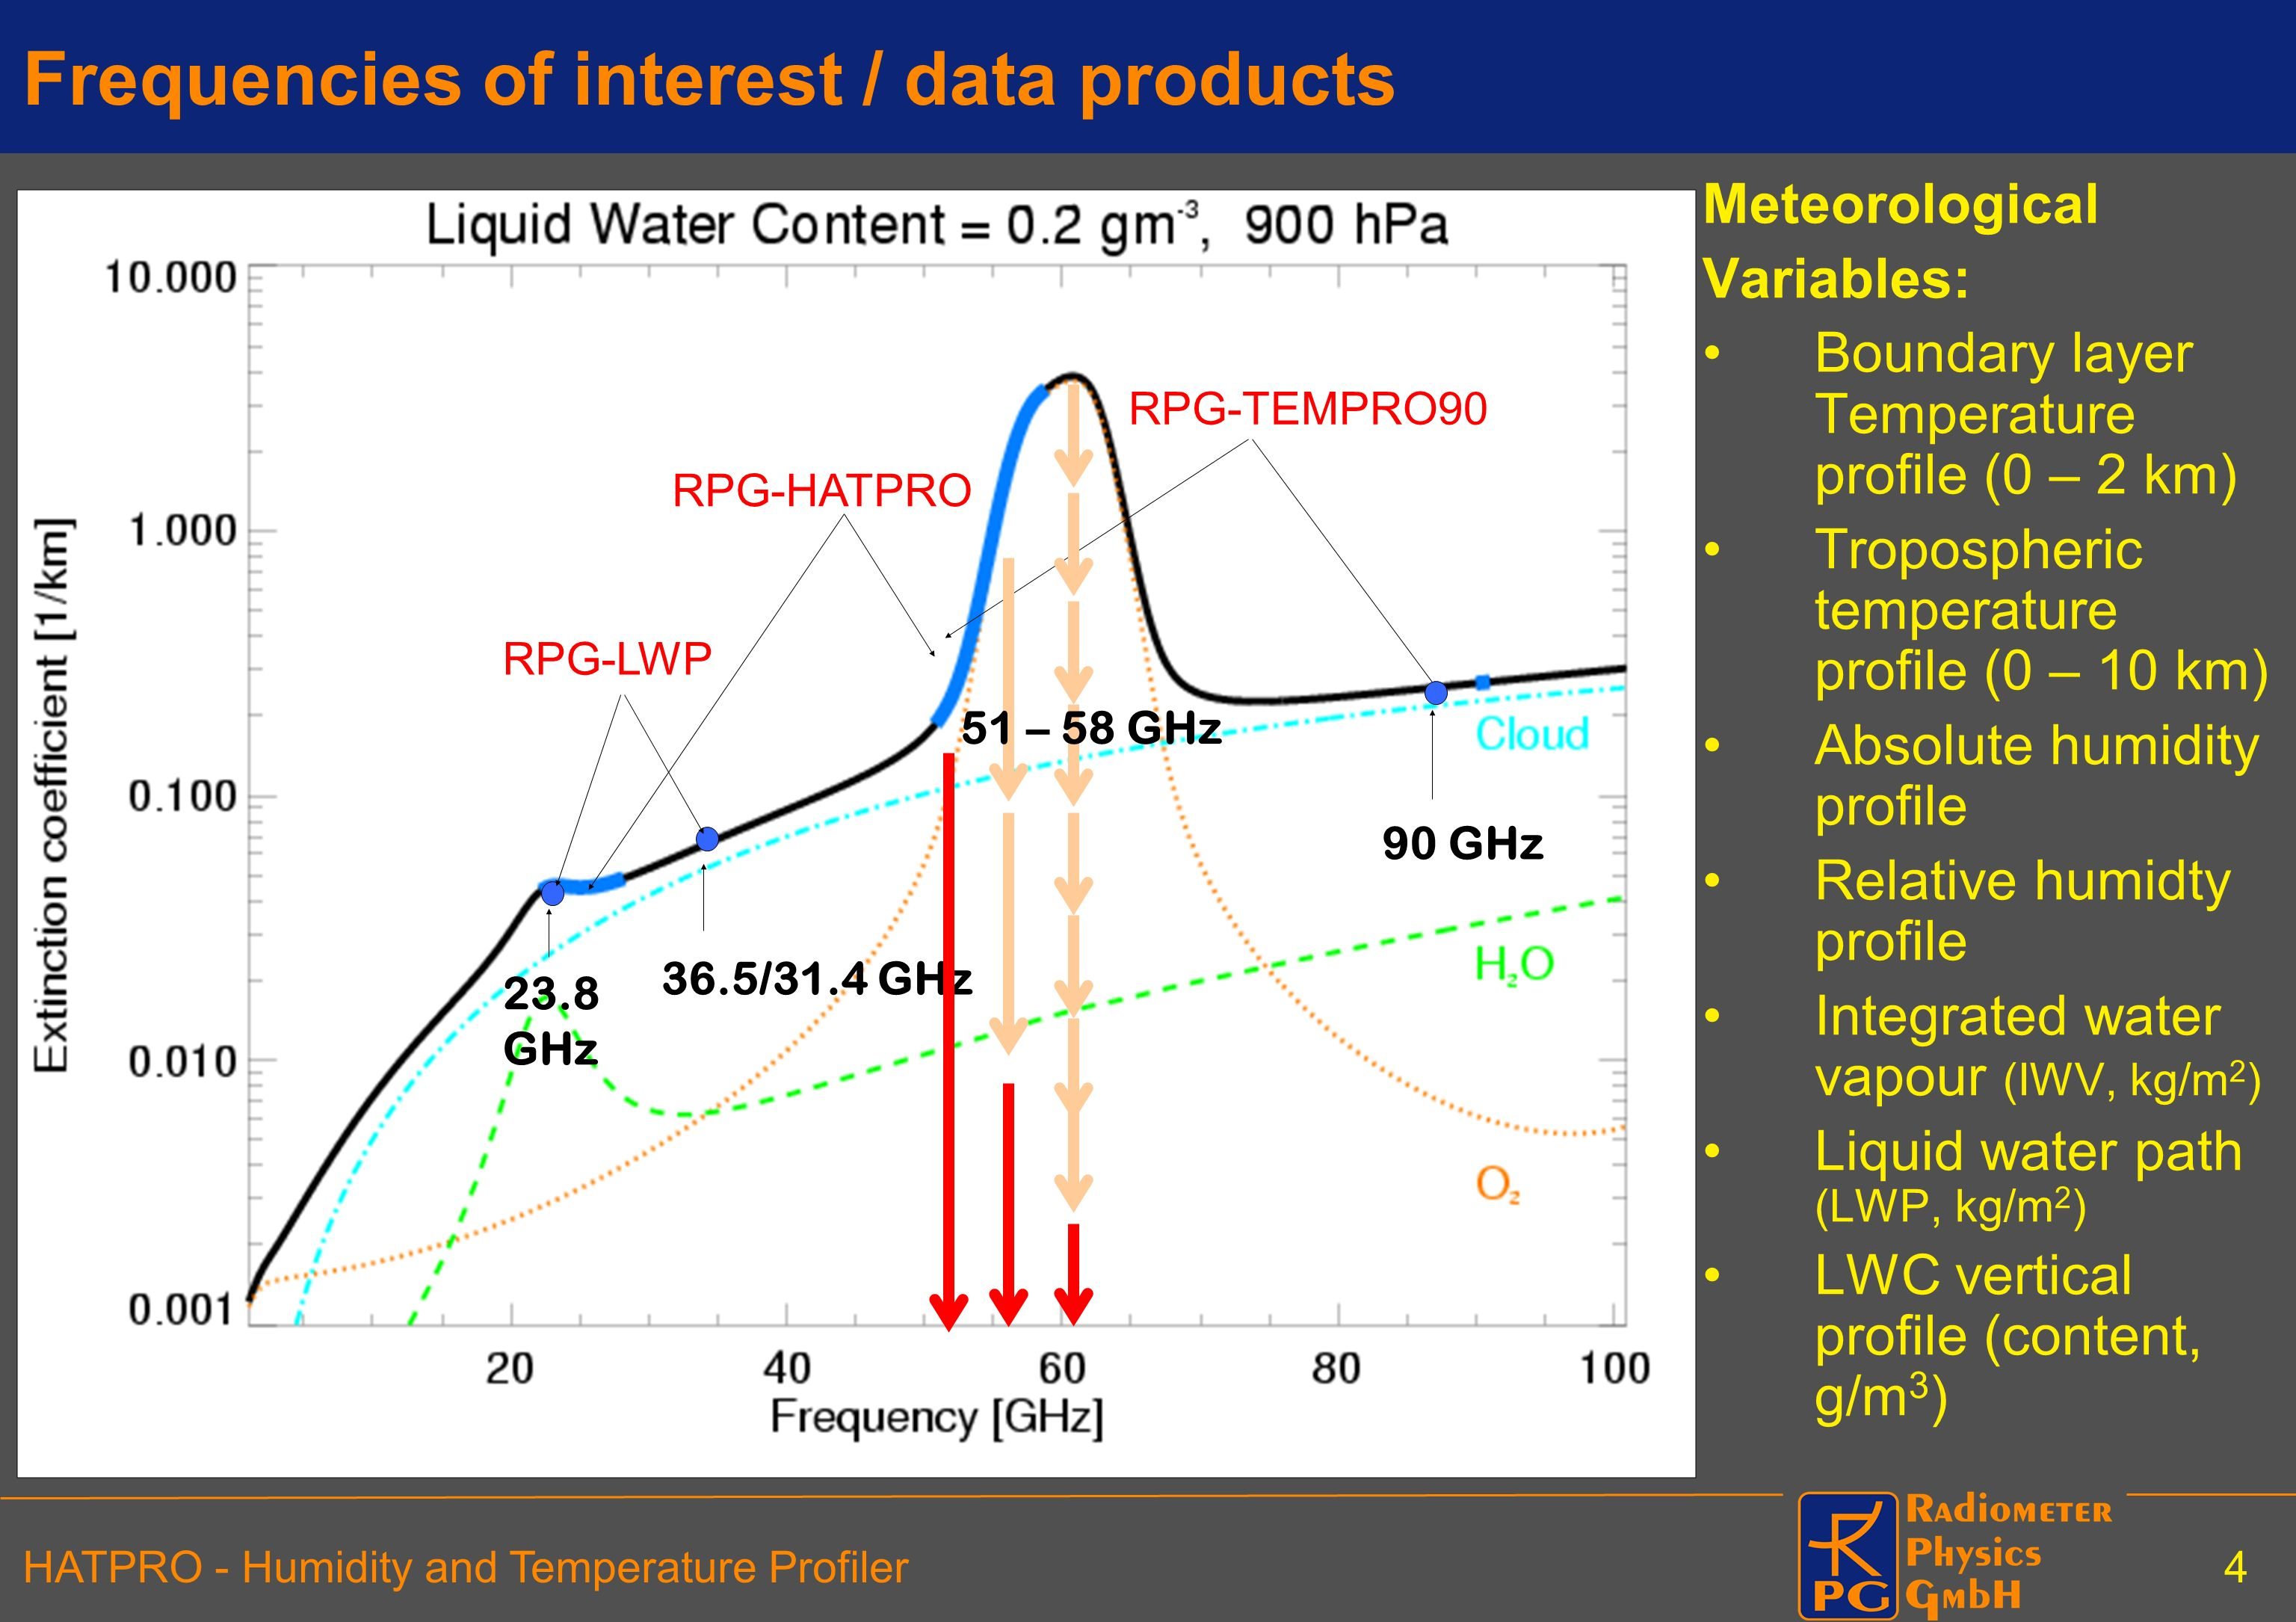 Frequencies of interest / data products